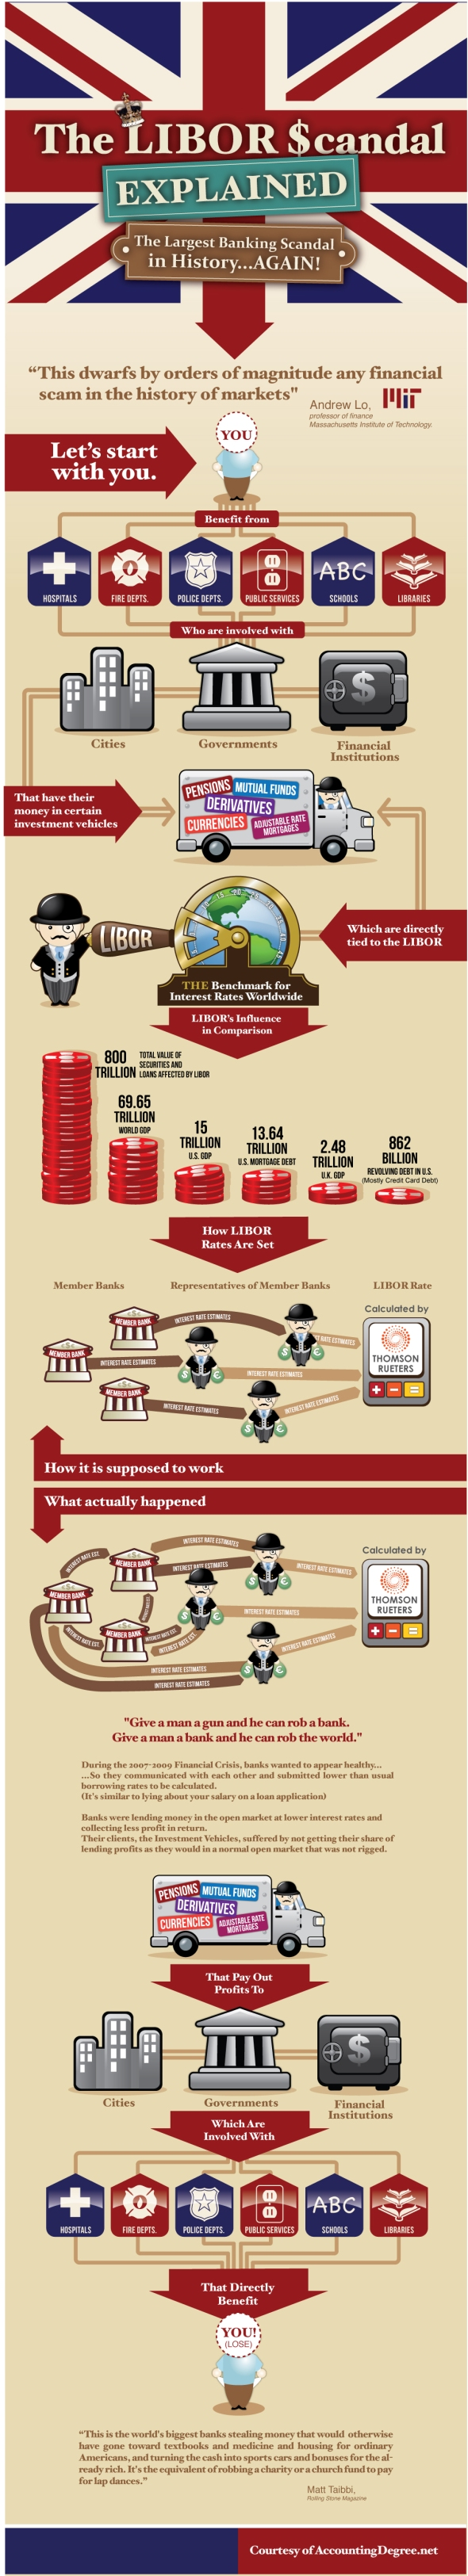 LIBOR Scandal Graphically Explained